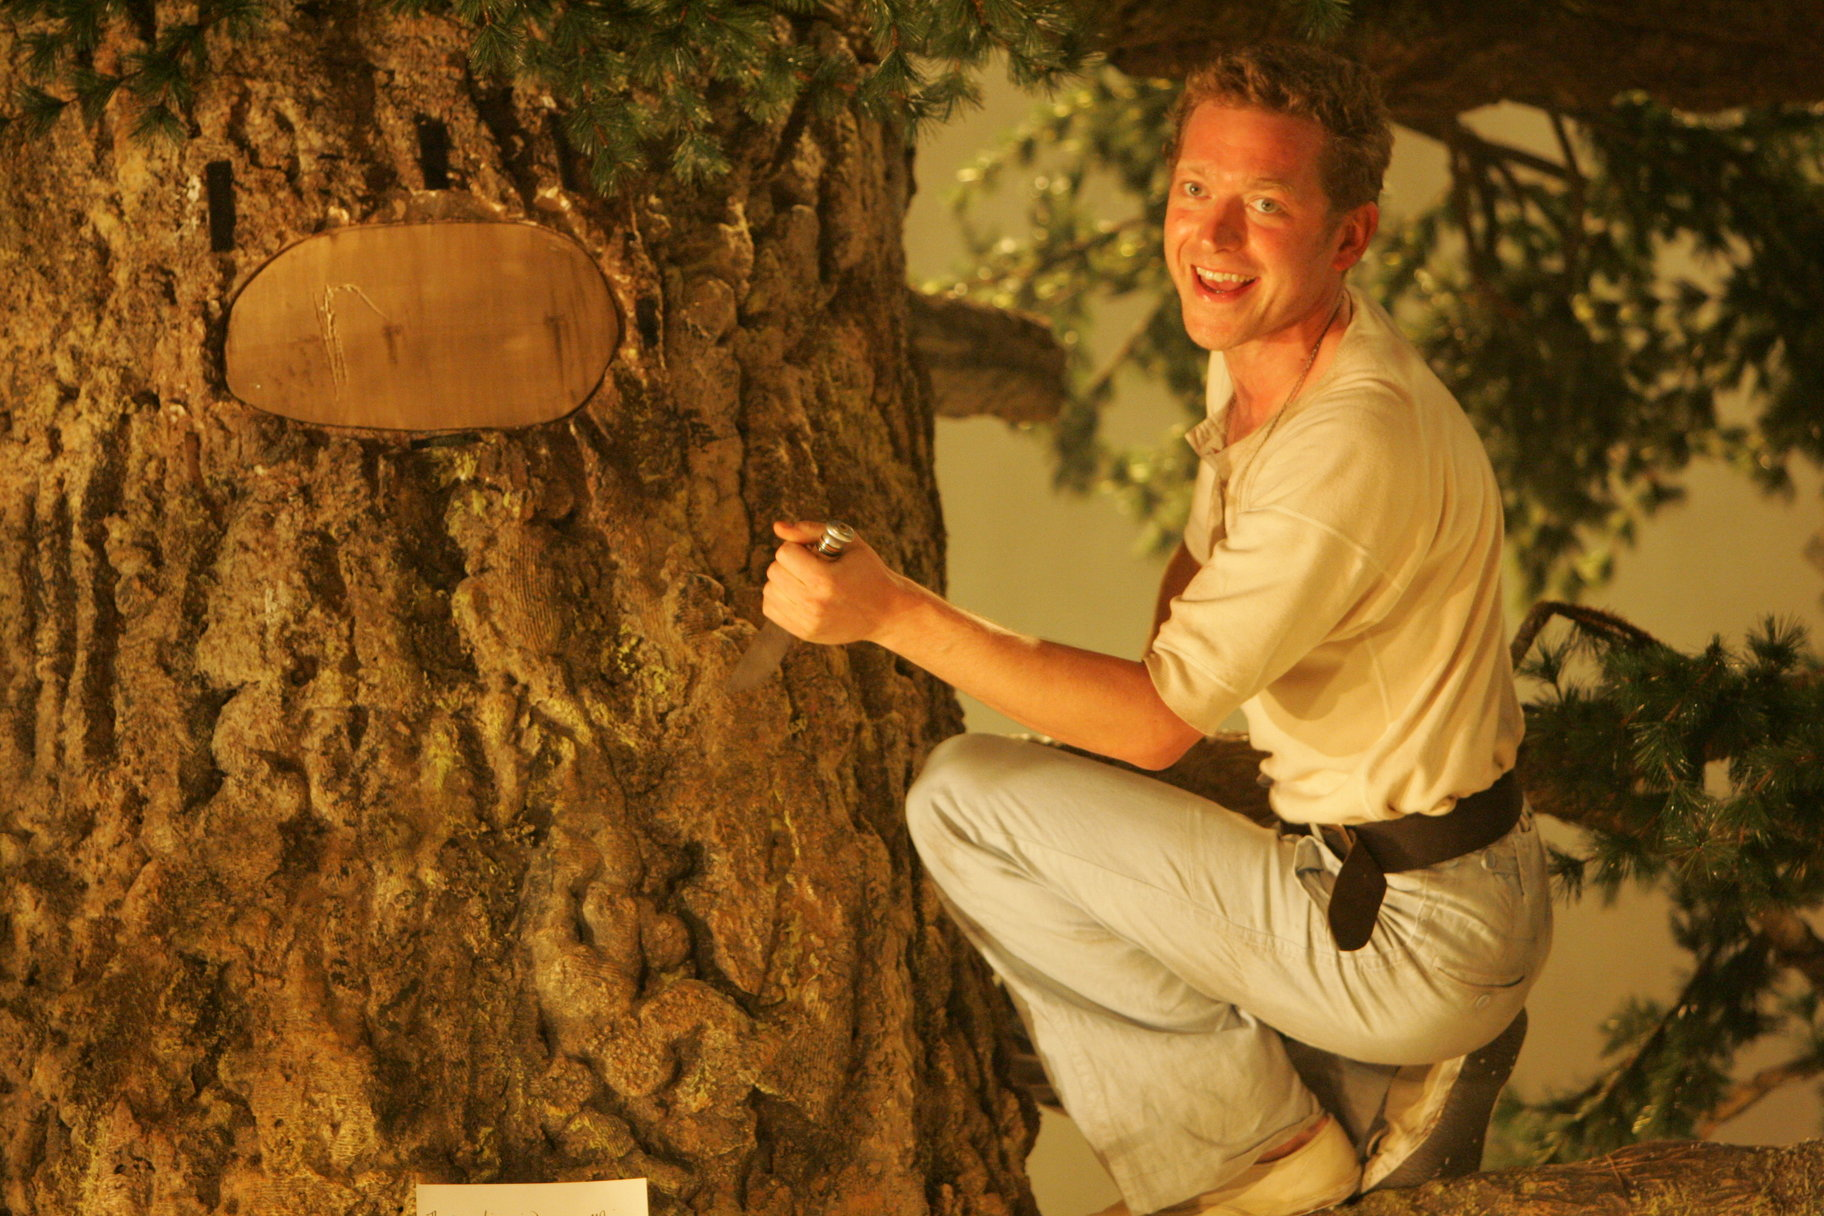 A man carving into a tree.